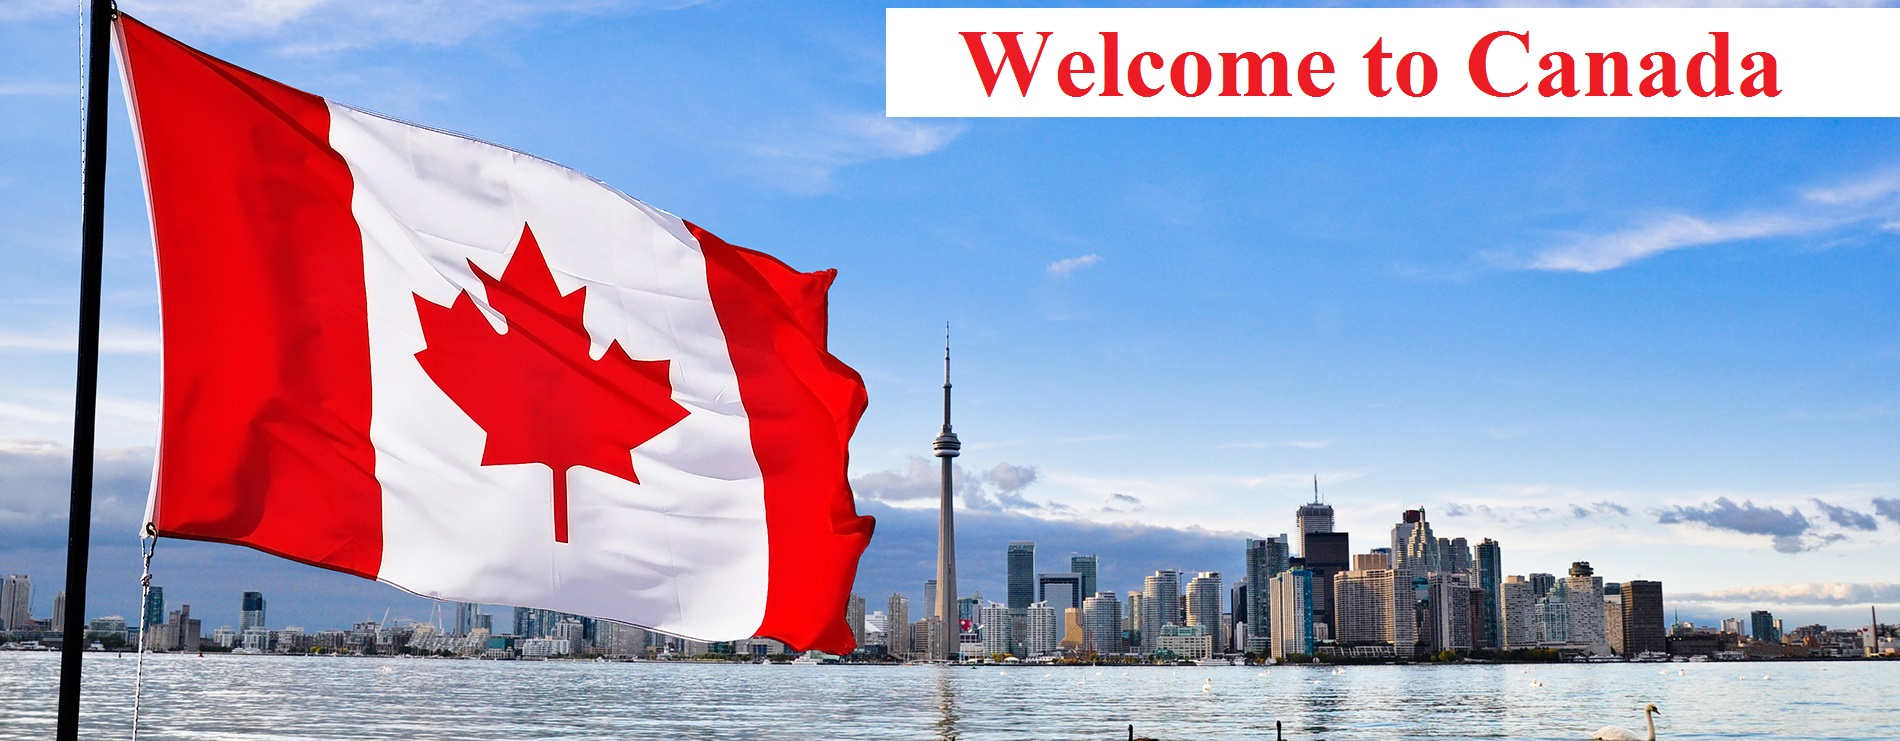 These Professions are always in higher demand in Canada and ease migration process.